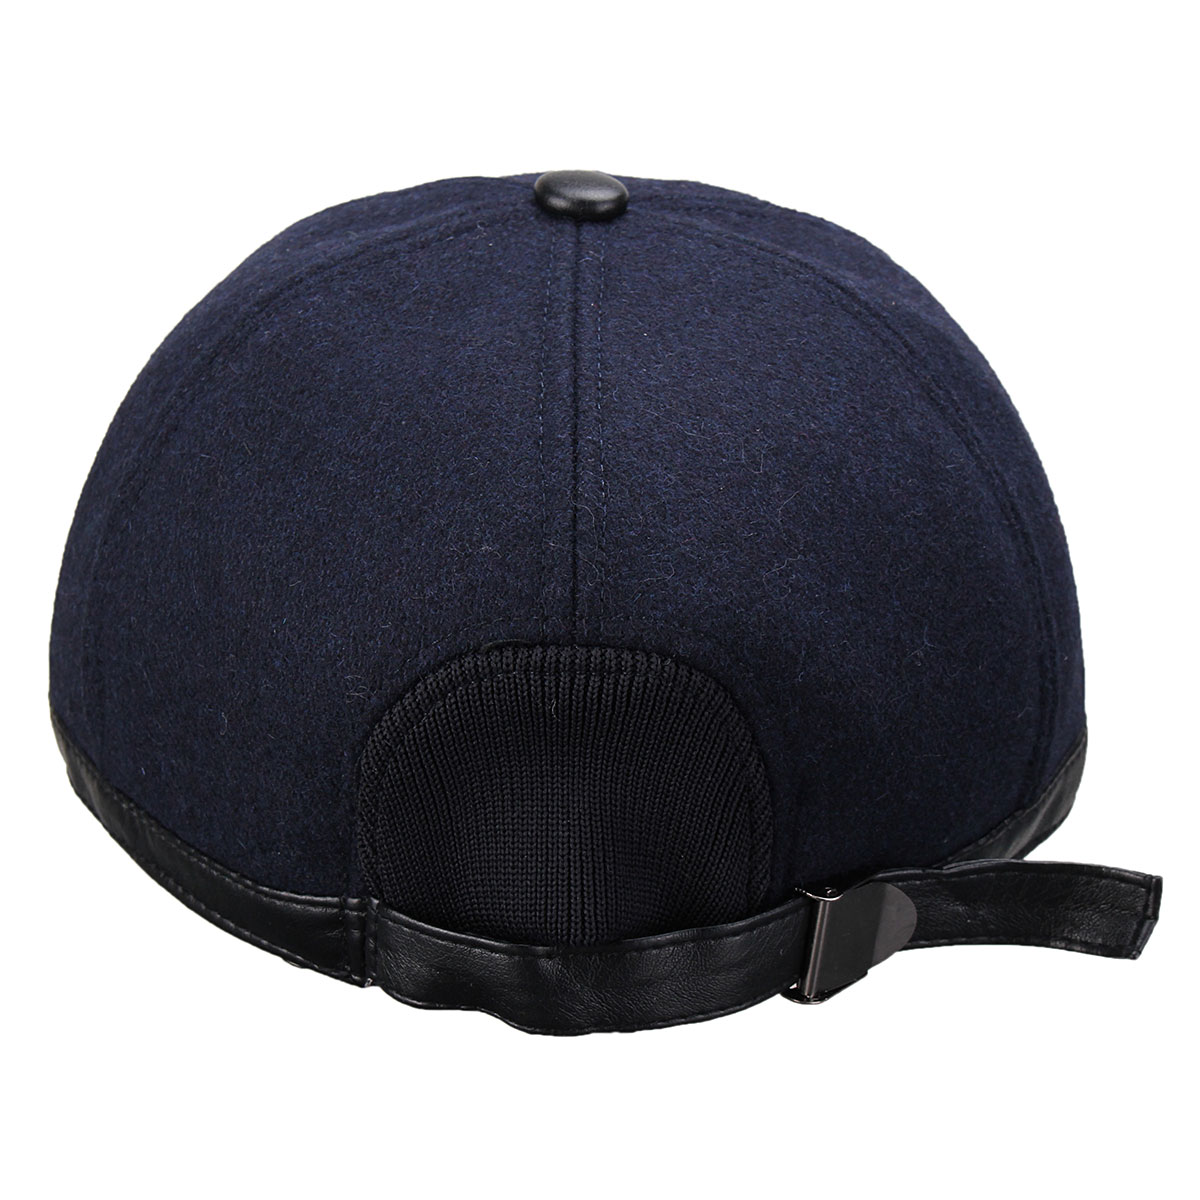 Unisex Men Women Earflap Earmuffs Woolen Baseball Cap Adjustable Golf Sport Outdoor Hat